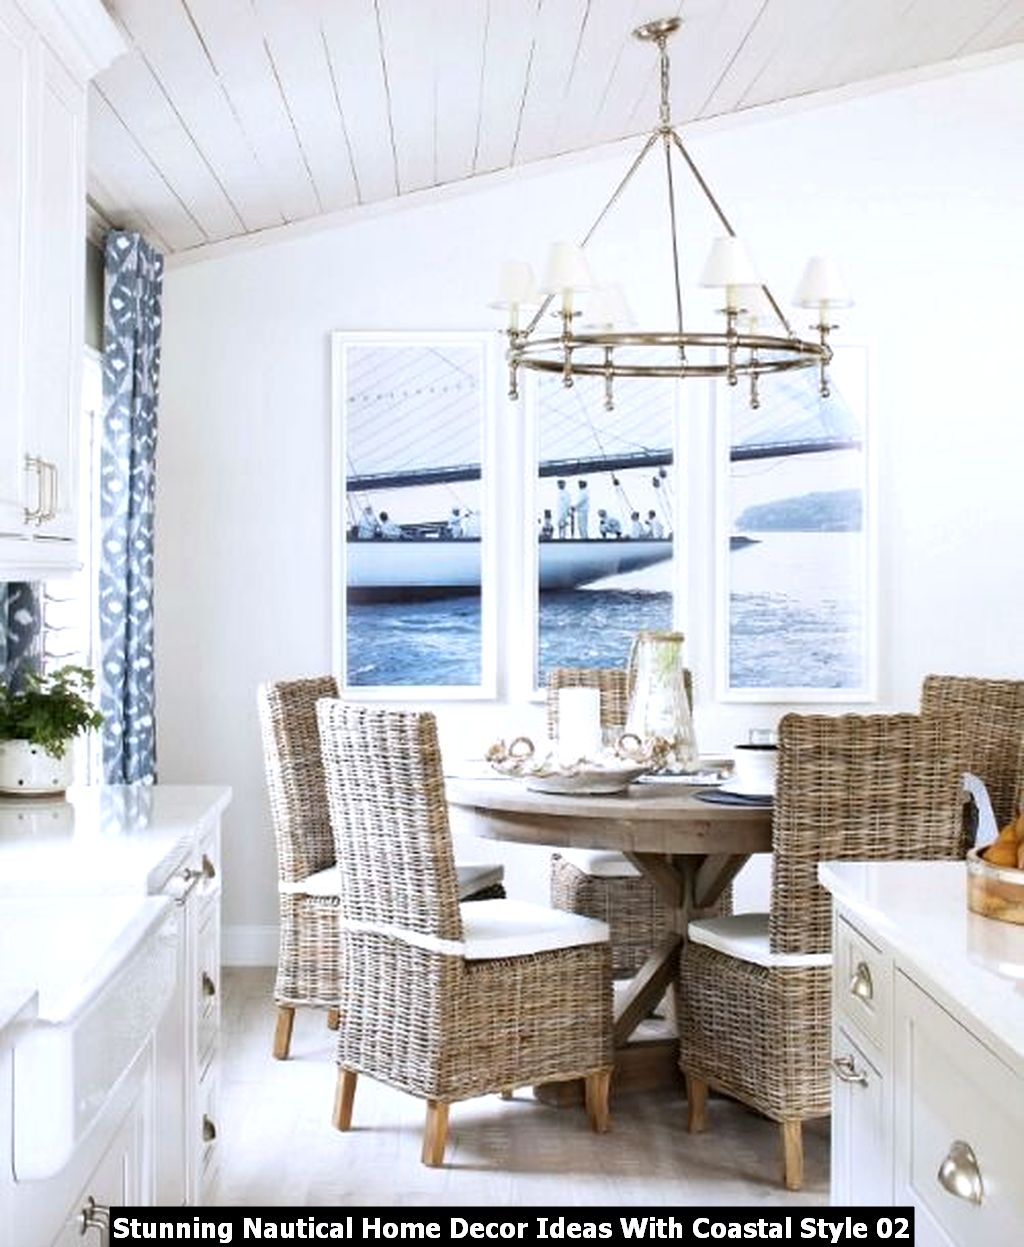 Stunning Nautical Home Decor Ideas With Coastal Style 02